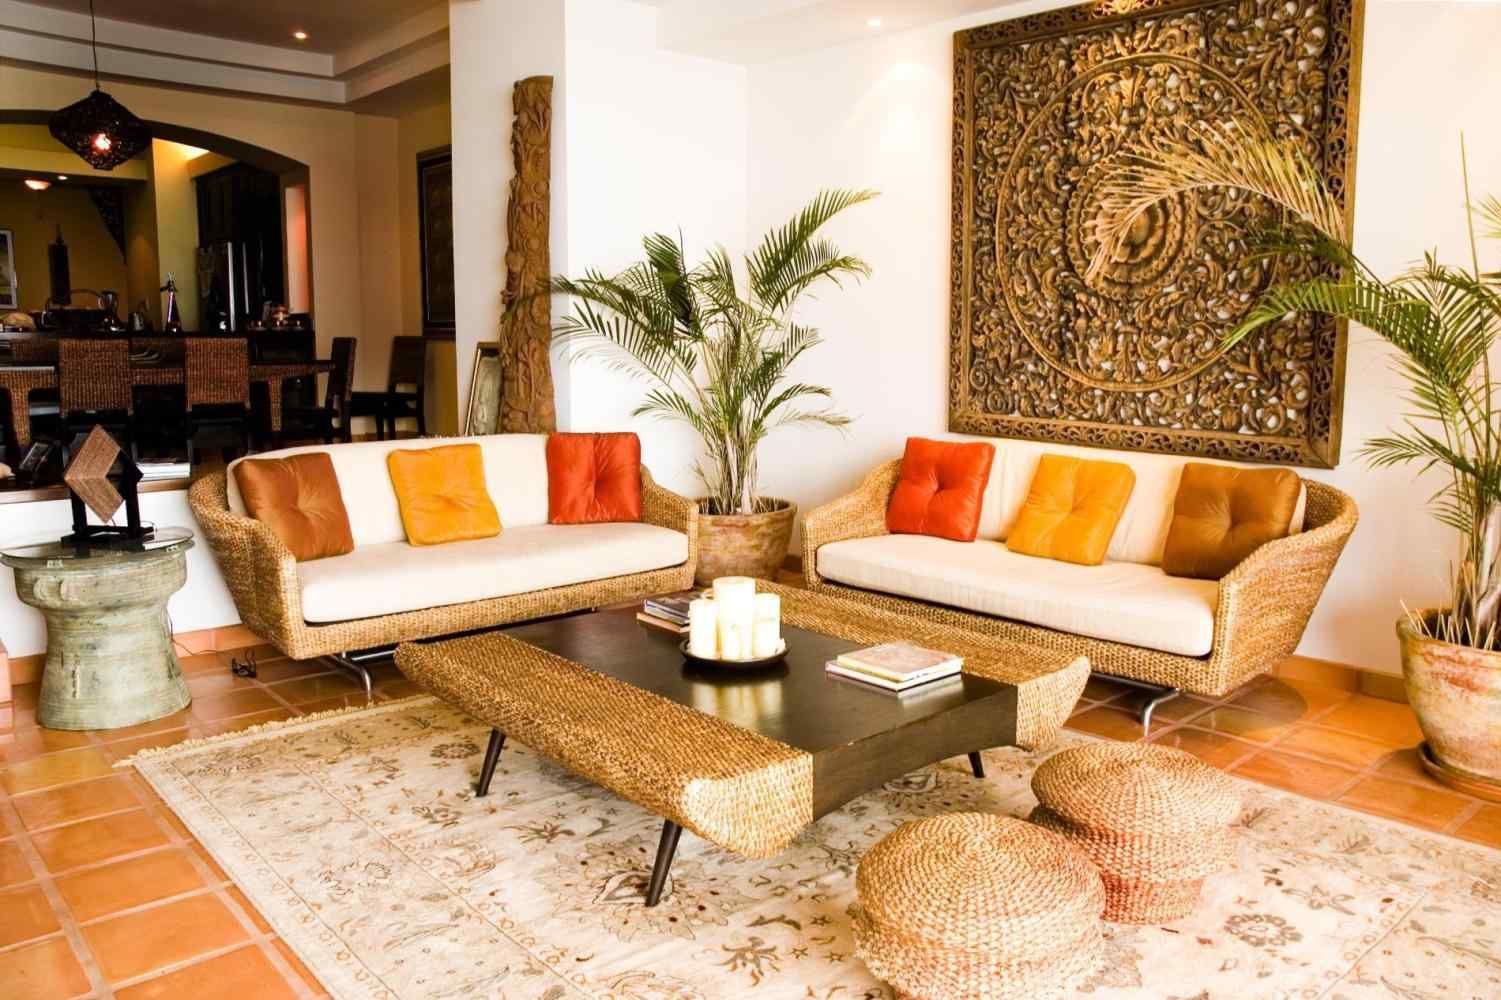 Top 5 indian interior design trends for 2018 published in pouted online magazine interiors naan